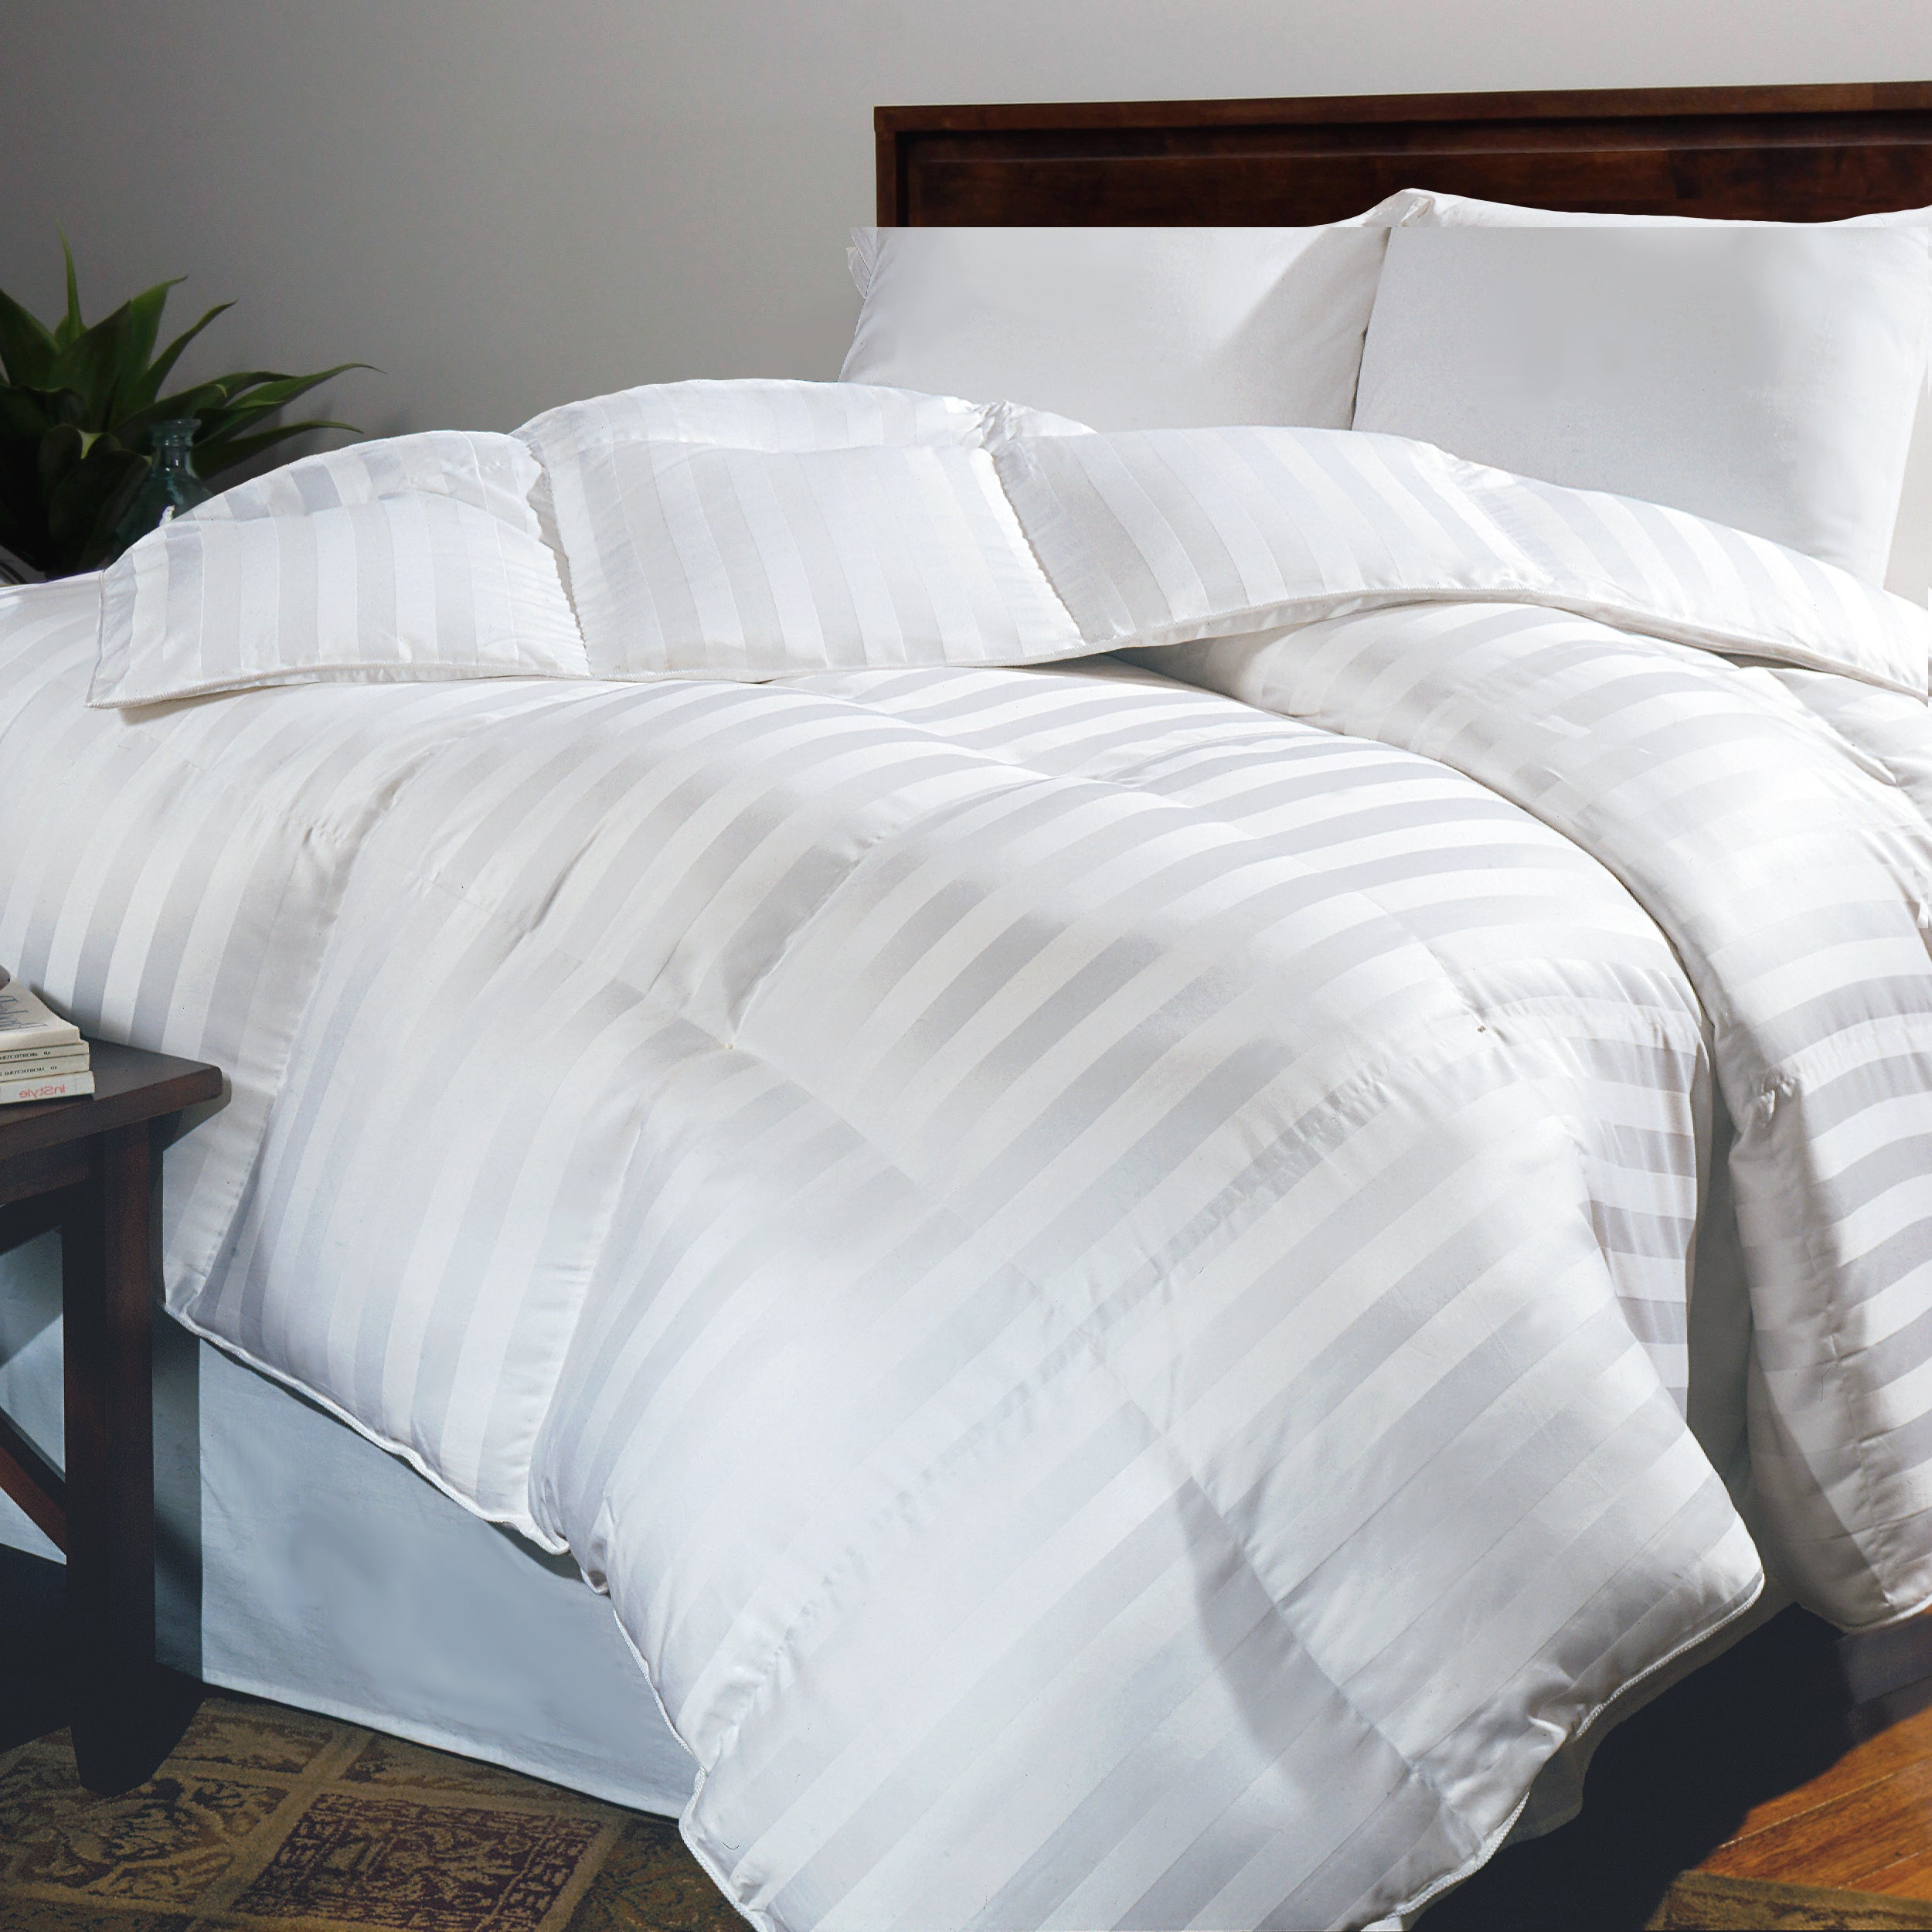 cotton laurel corded bedding herringbone sheets valencia microfiber queen down ck klein rn fq sheet costco calvin home white bloomingdales clearance linens set review fitted charisma modern king recall macys full combed comforter architecture